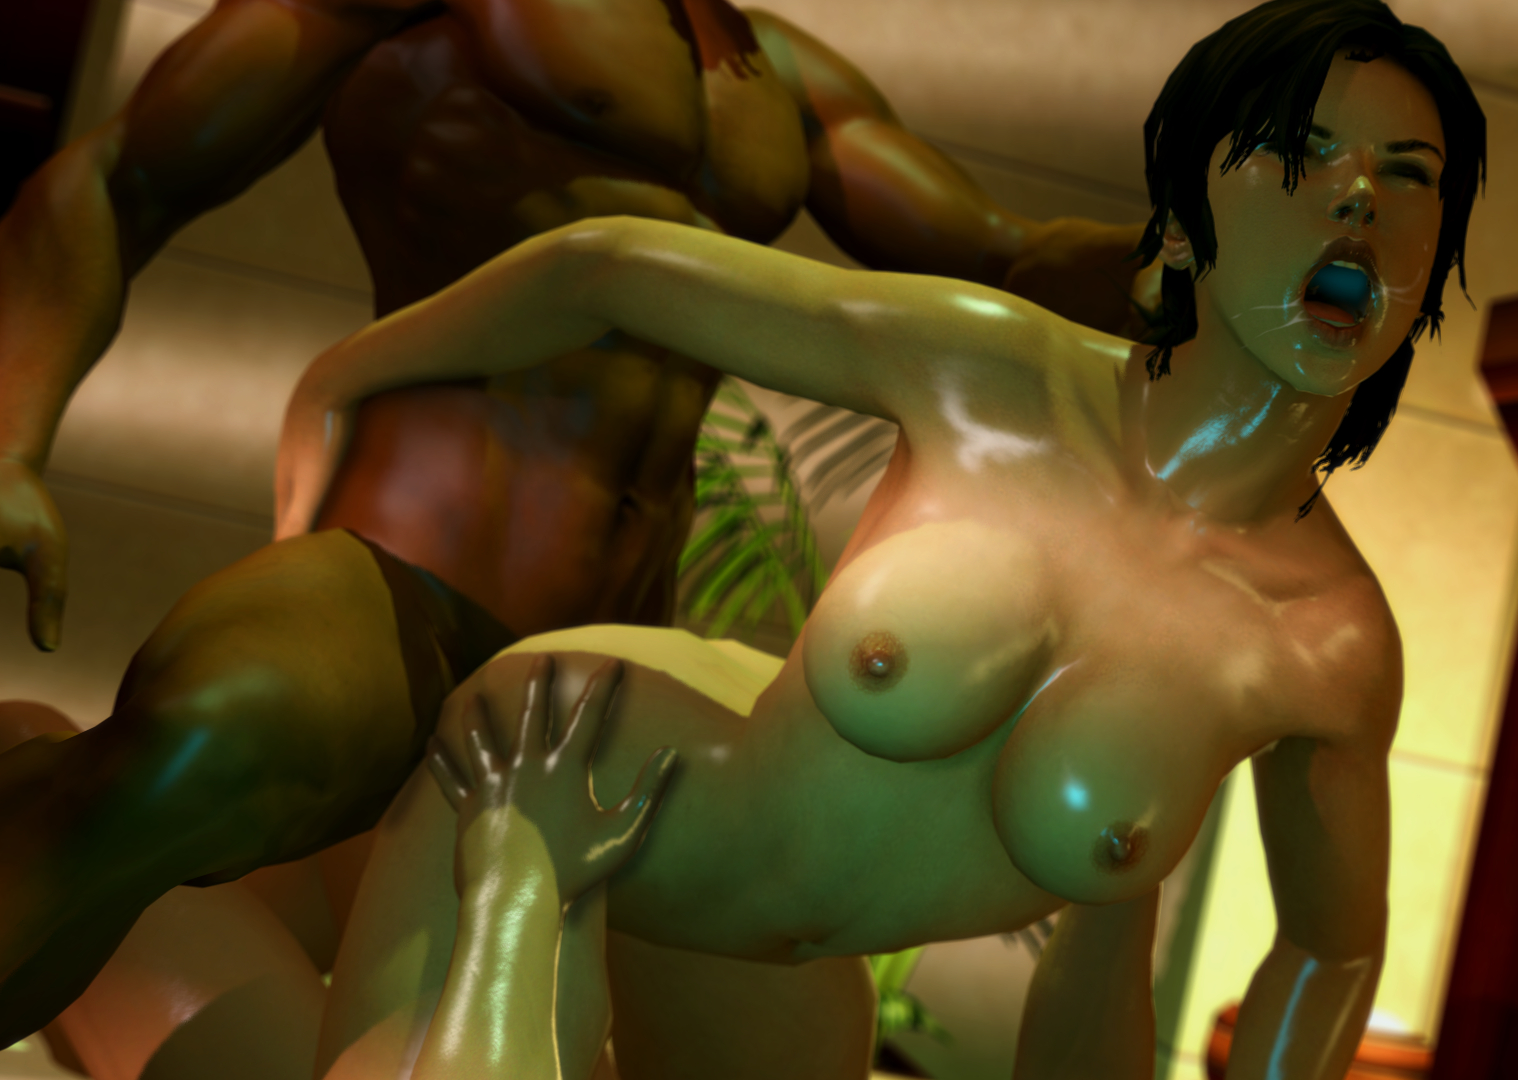 Video e hentai lara croft erotica photos